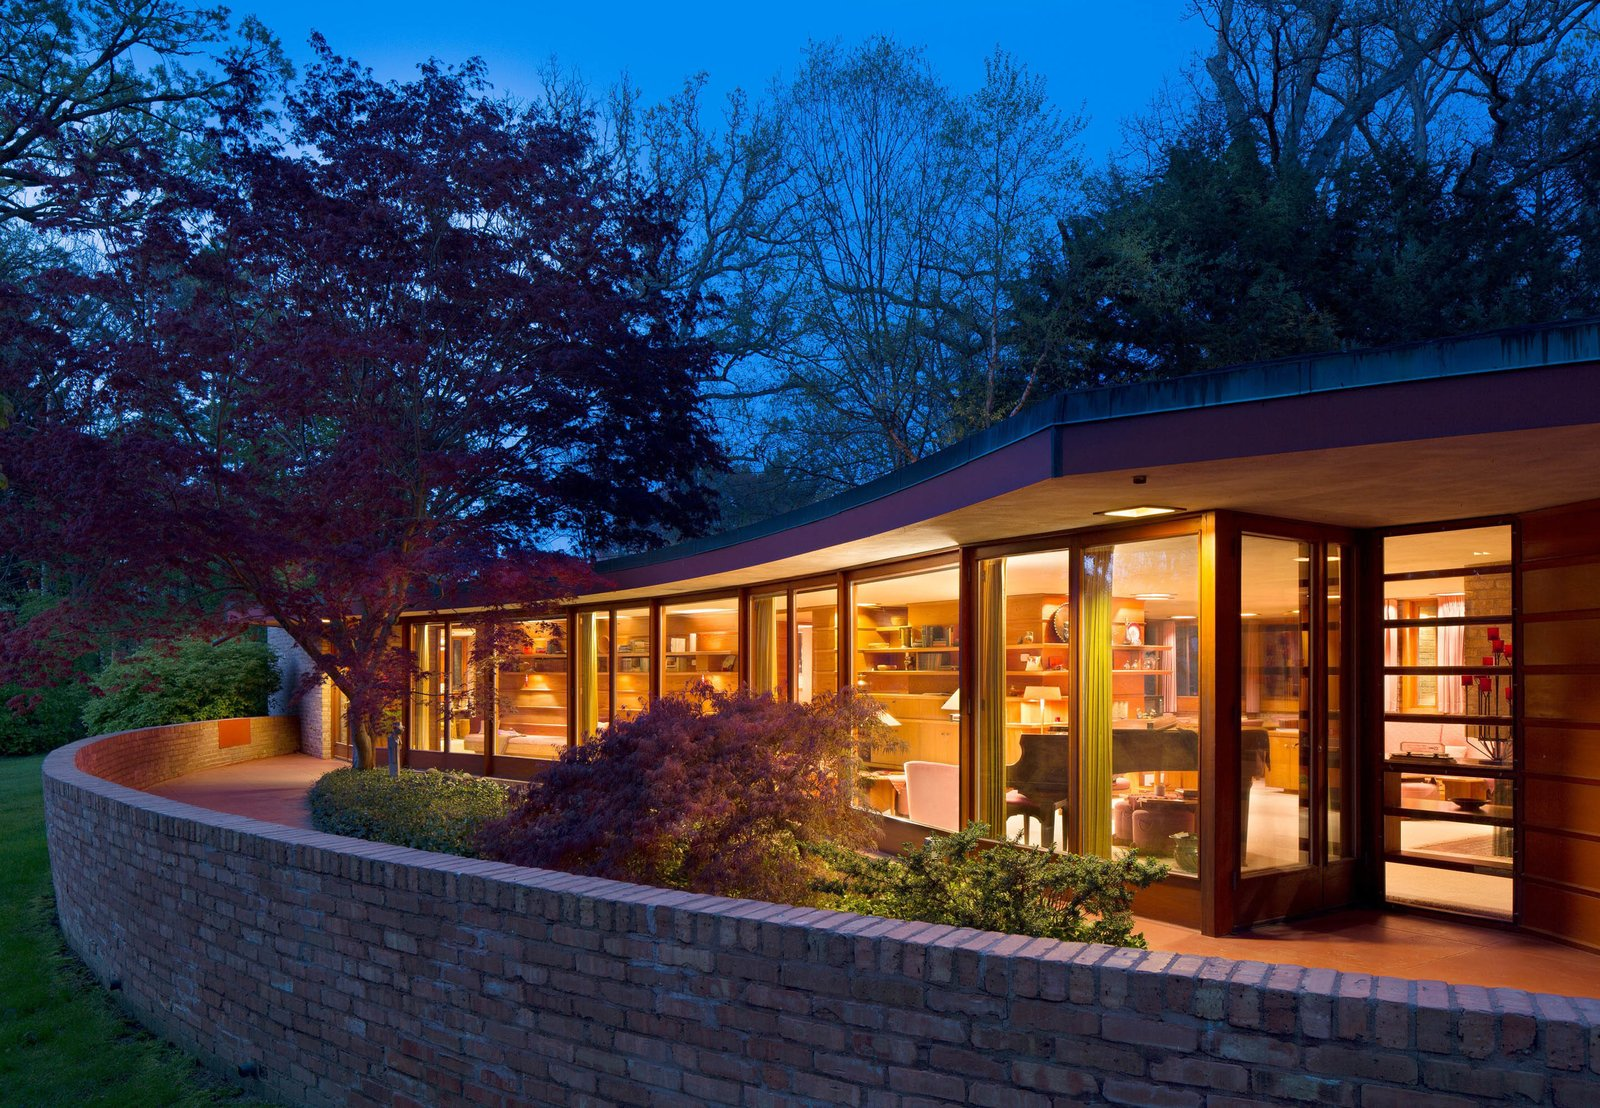 Outdoor, Stone Fences, Wall, Large Patio, Porch, Deck, Shrubs, Trees, and Side Yard The Kenneth and Phyllis Laurent House, designed by Frank Lloyd Wright, features a solar hemicycle footprint. Image courtesy of Wright Auction House.  Photo 4 of 10 in 10 Modern Iconic Masterpieces from Accessible Frank Lloyd Wright House in Illinois Is Reborn as a Museum